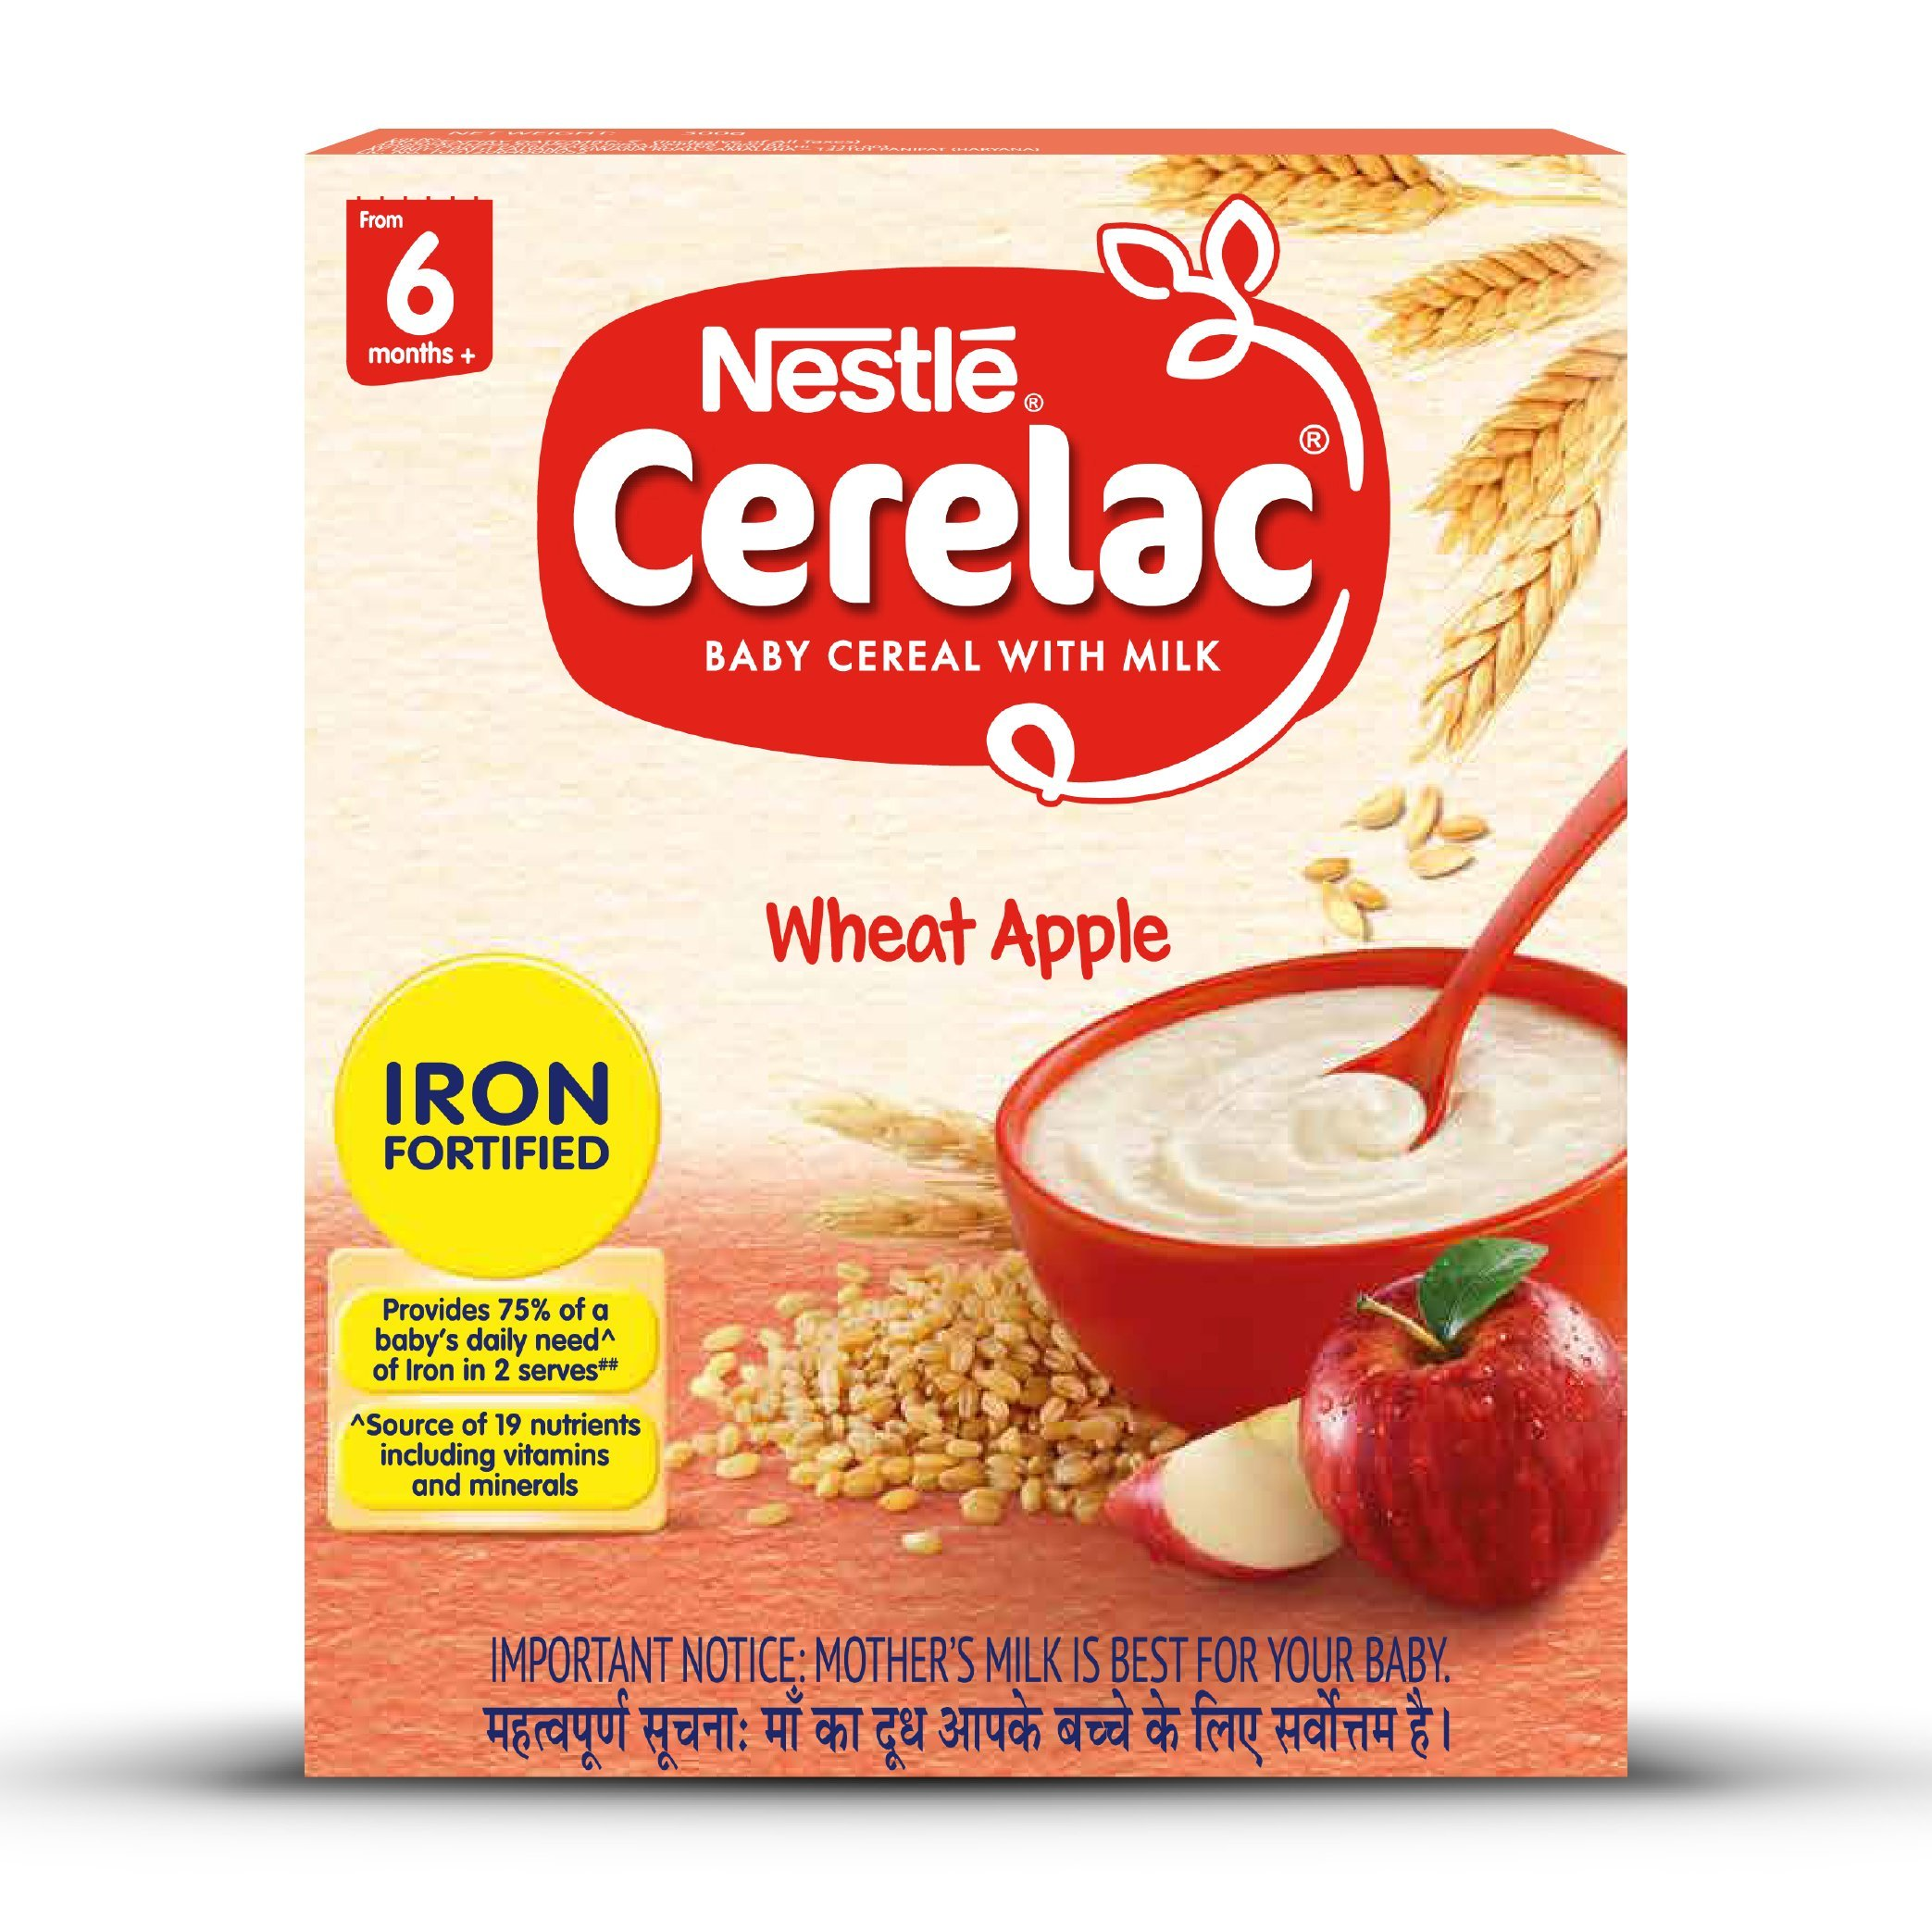 Nestlé Cerelac Infant Cereal Stage-1 (6 Months-24 Months) Wheat Apple 300g by Nestle